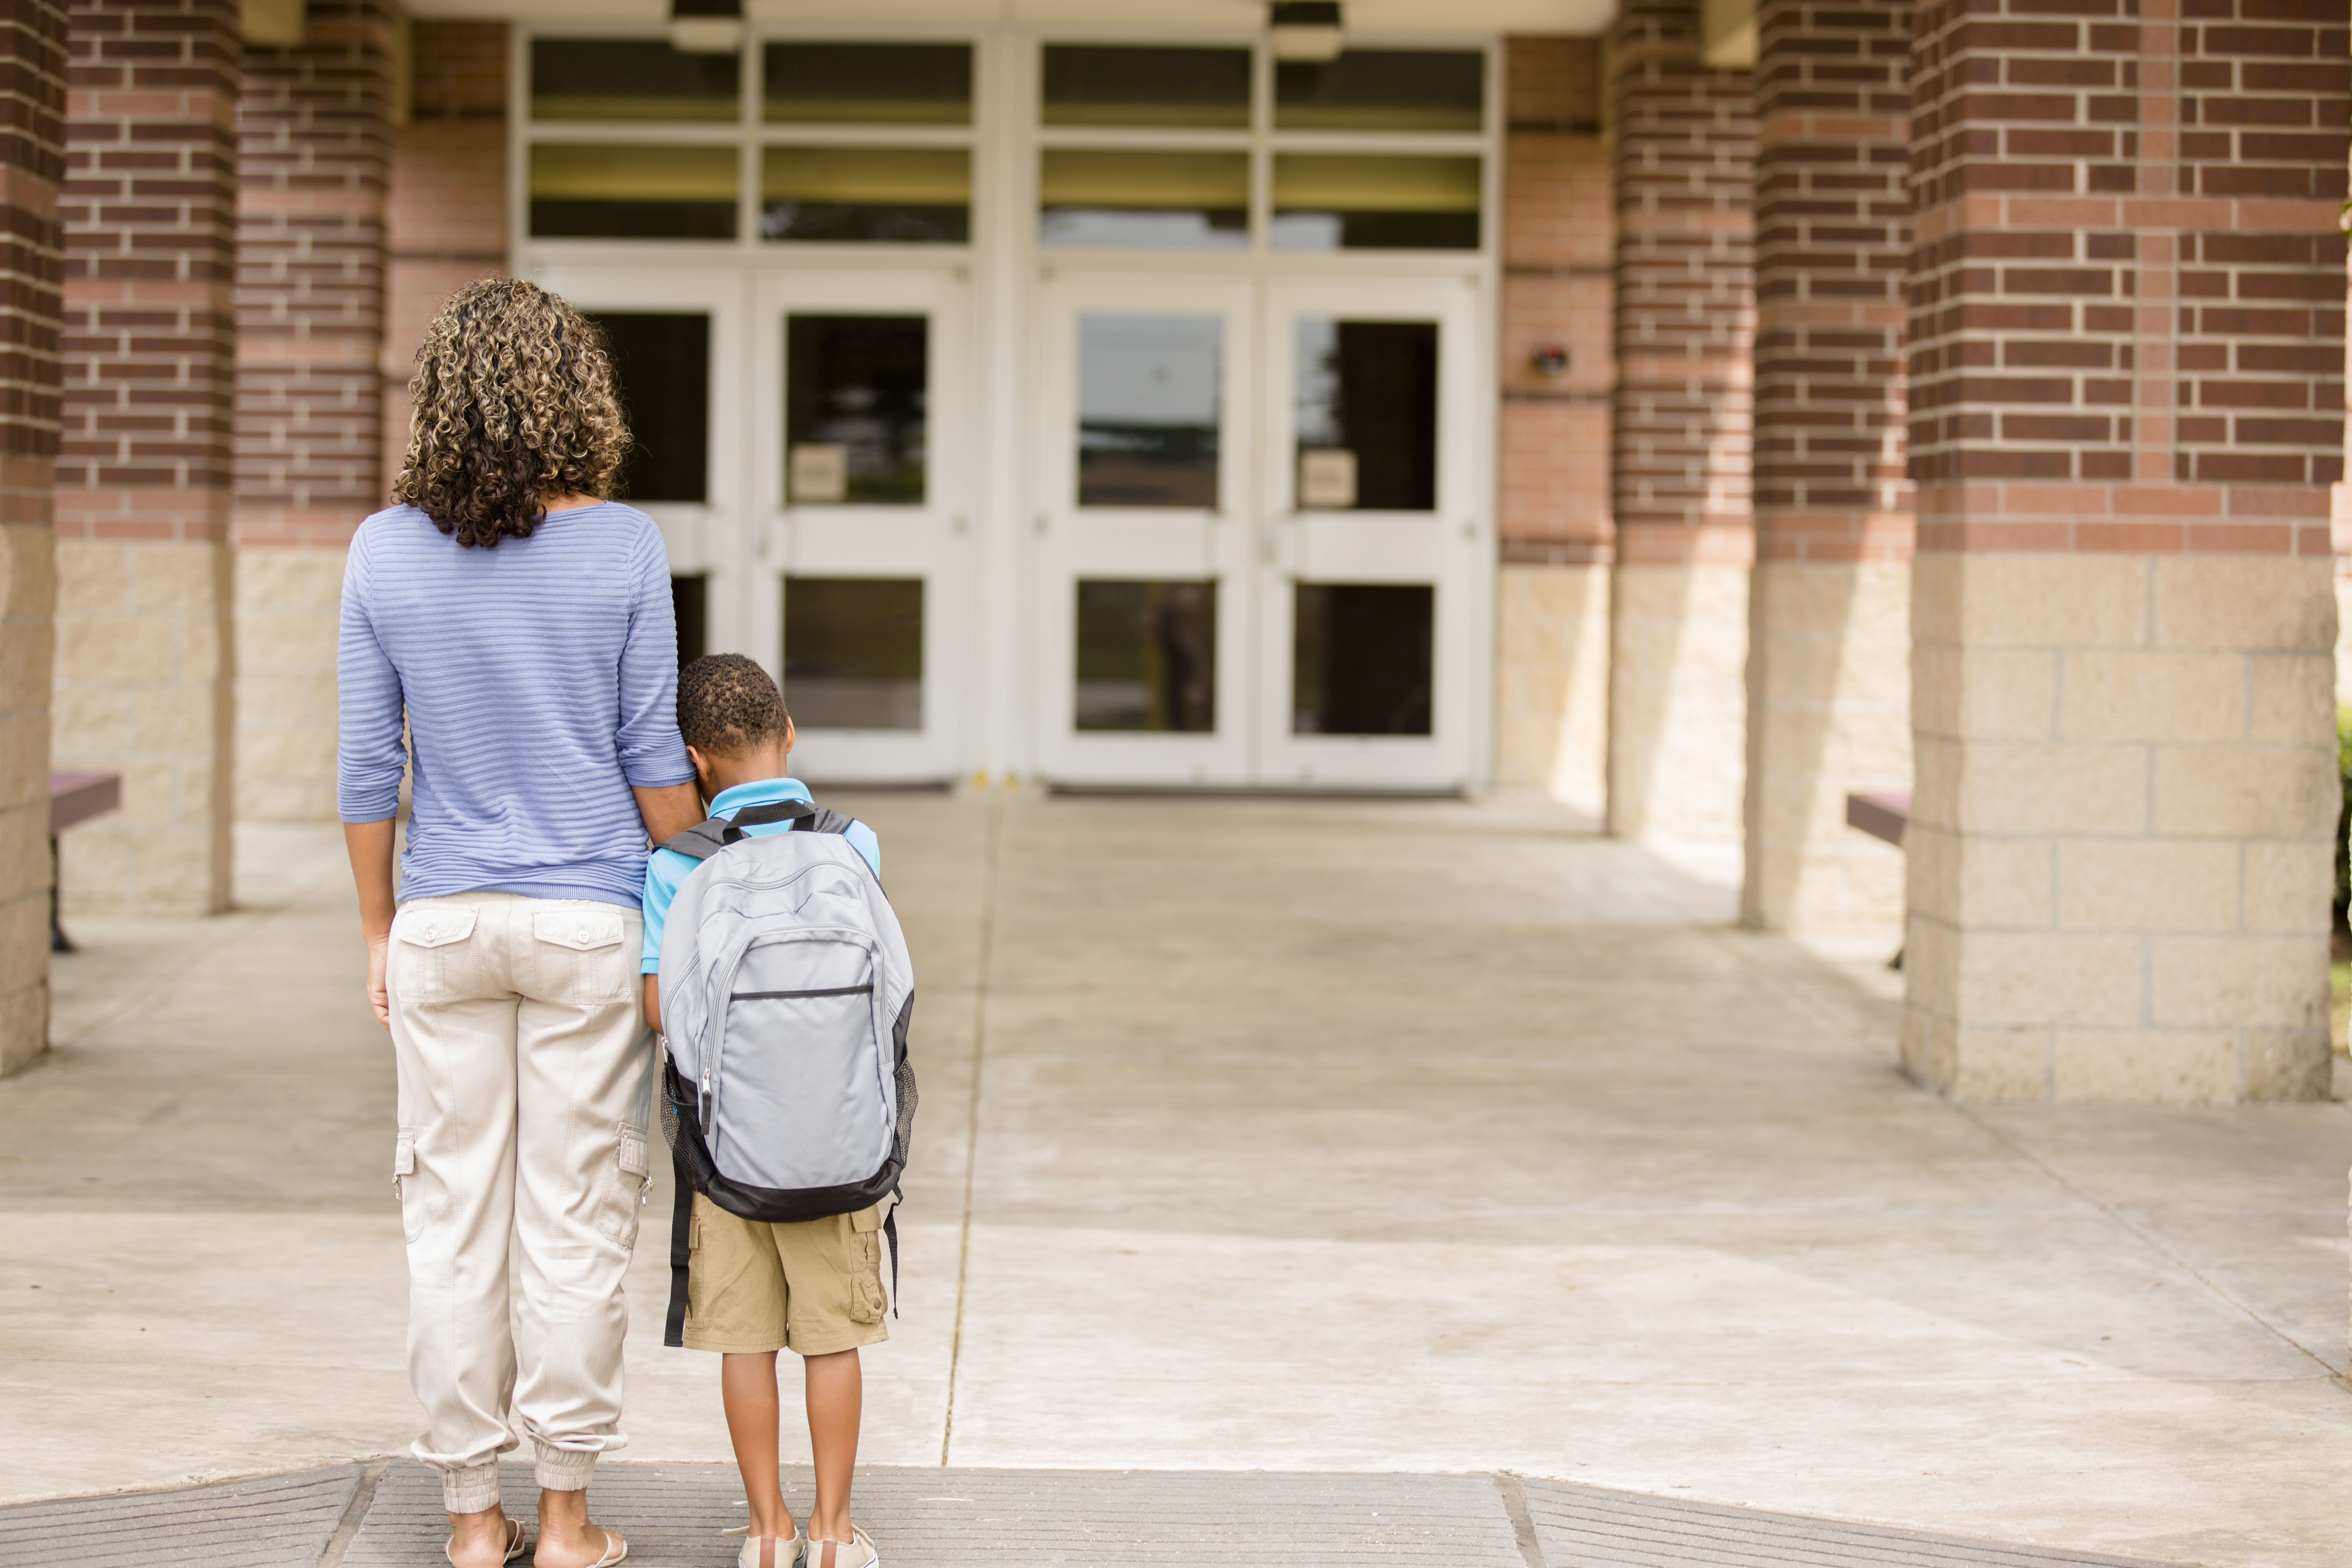 A mother and child stand together outside a school building.